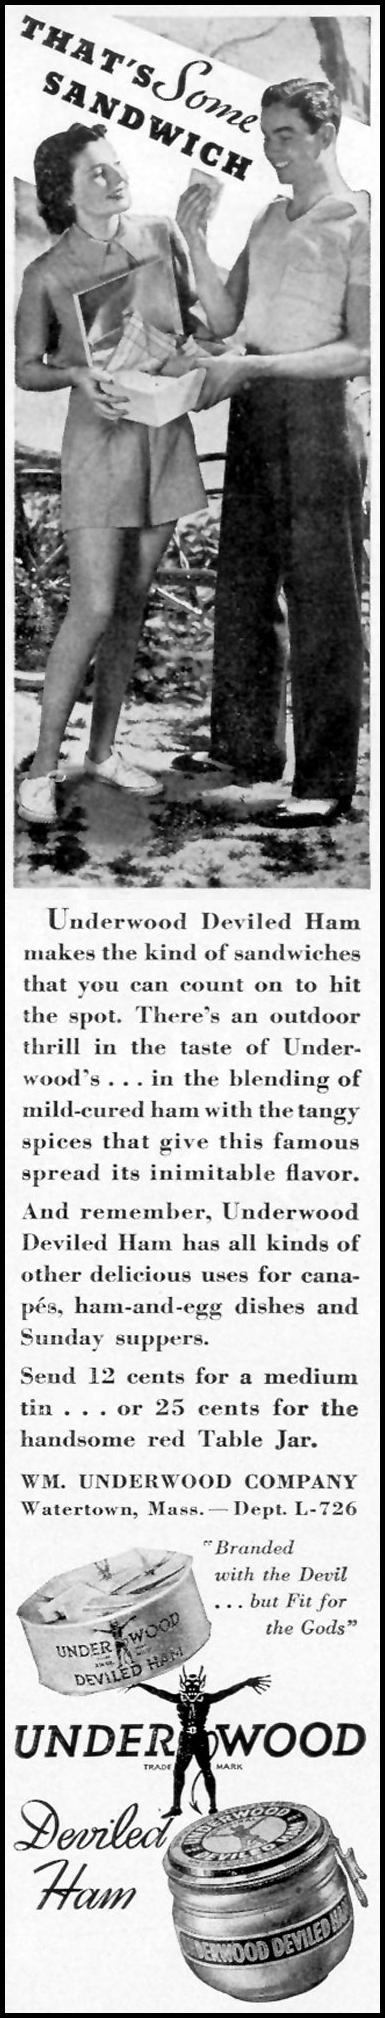 UNDERWOOD DEVILED HAM LIFE 07/26/1937 p. 78